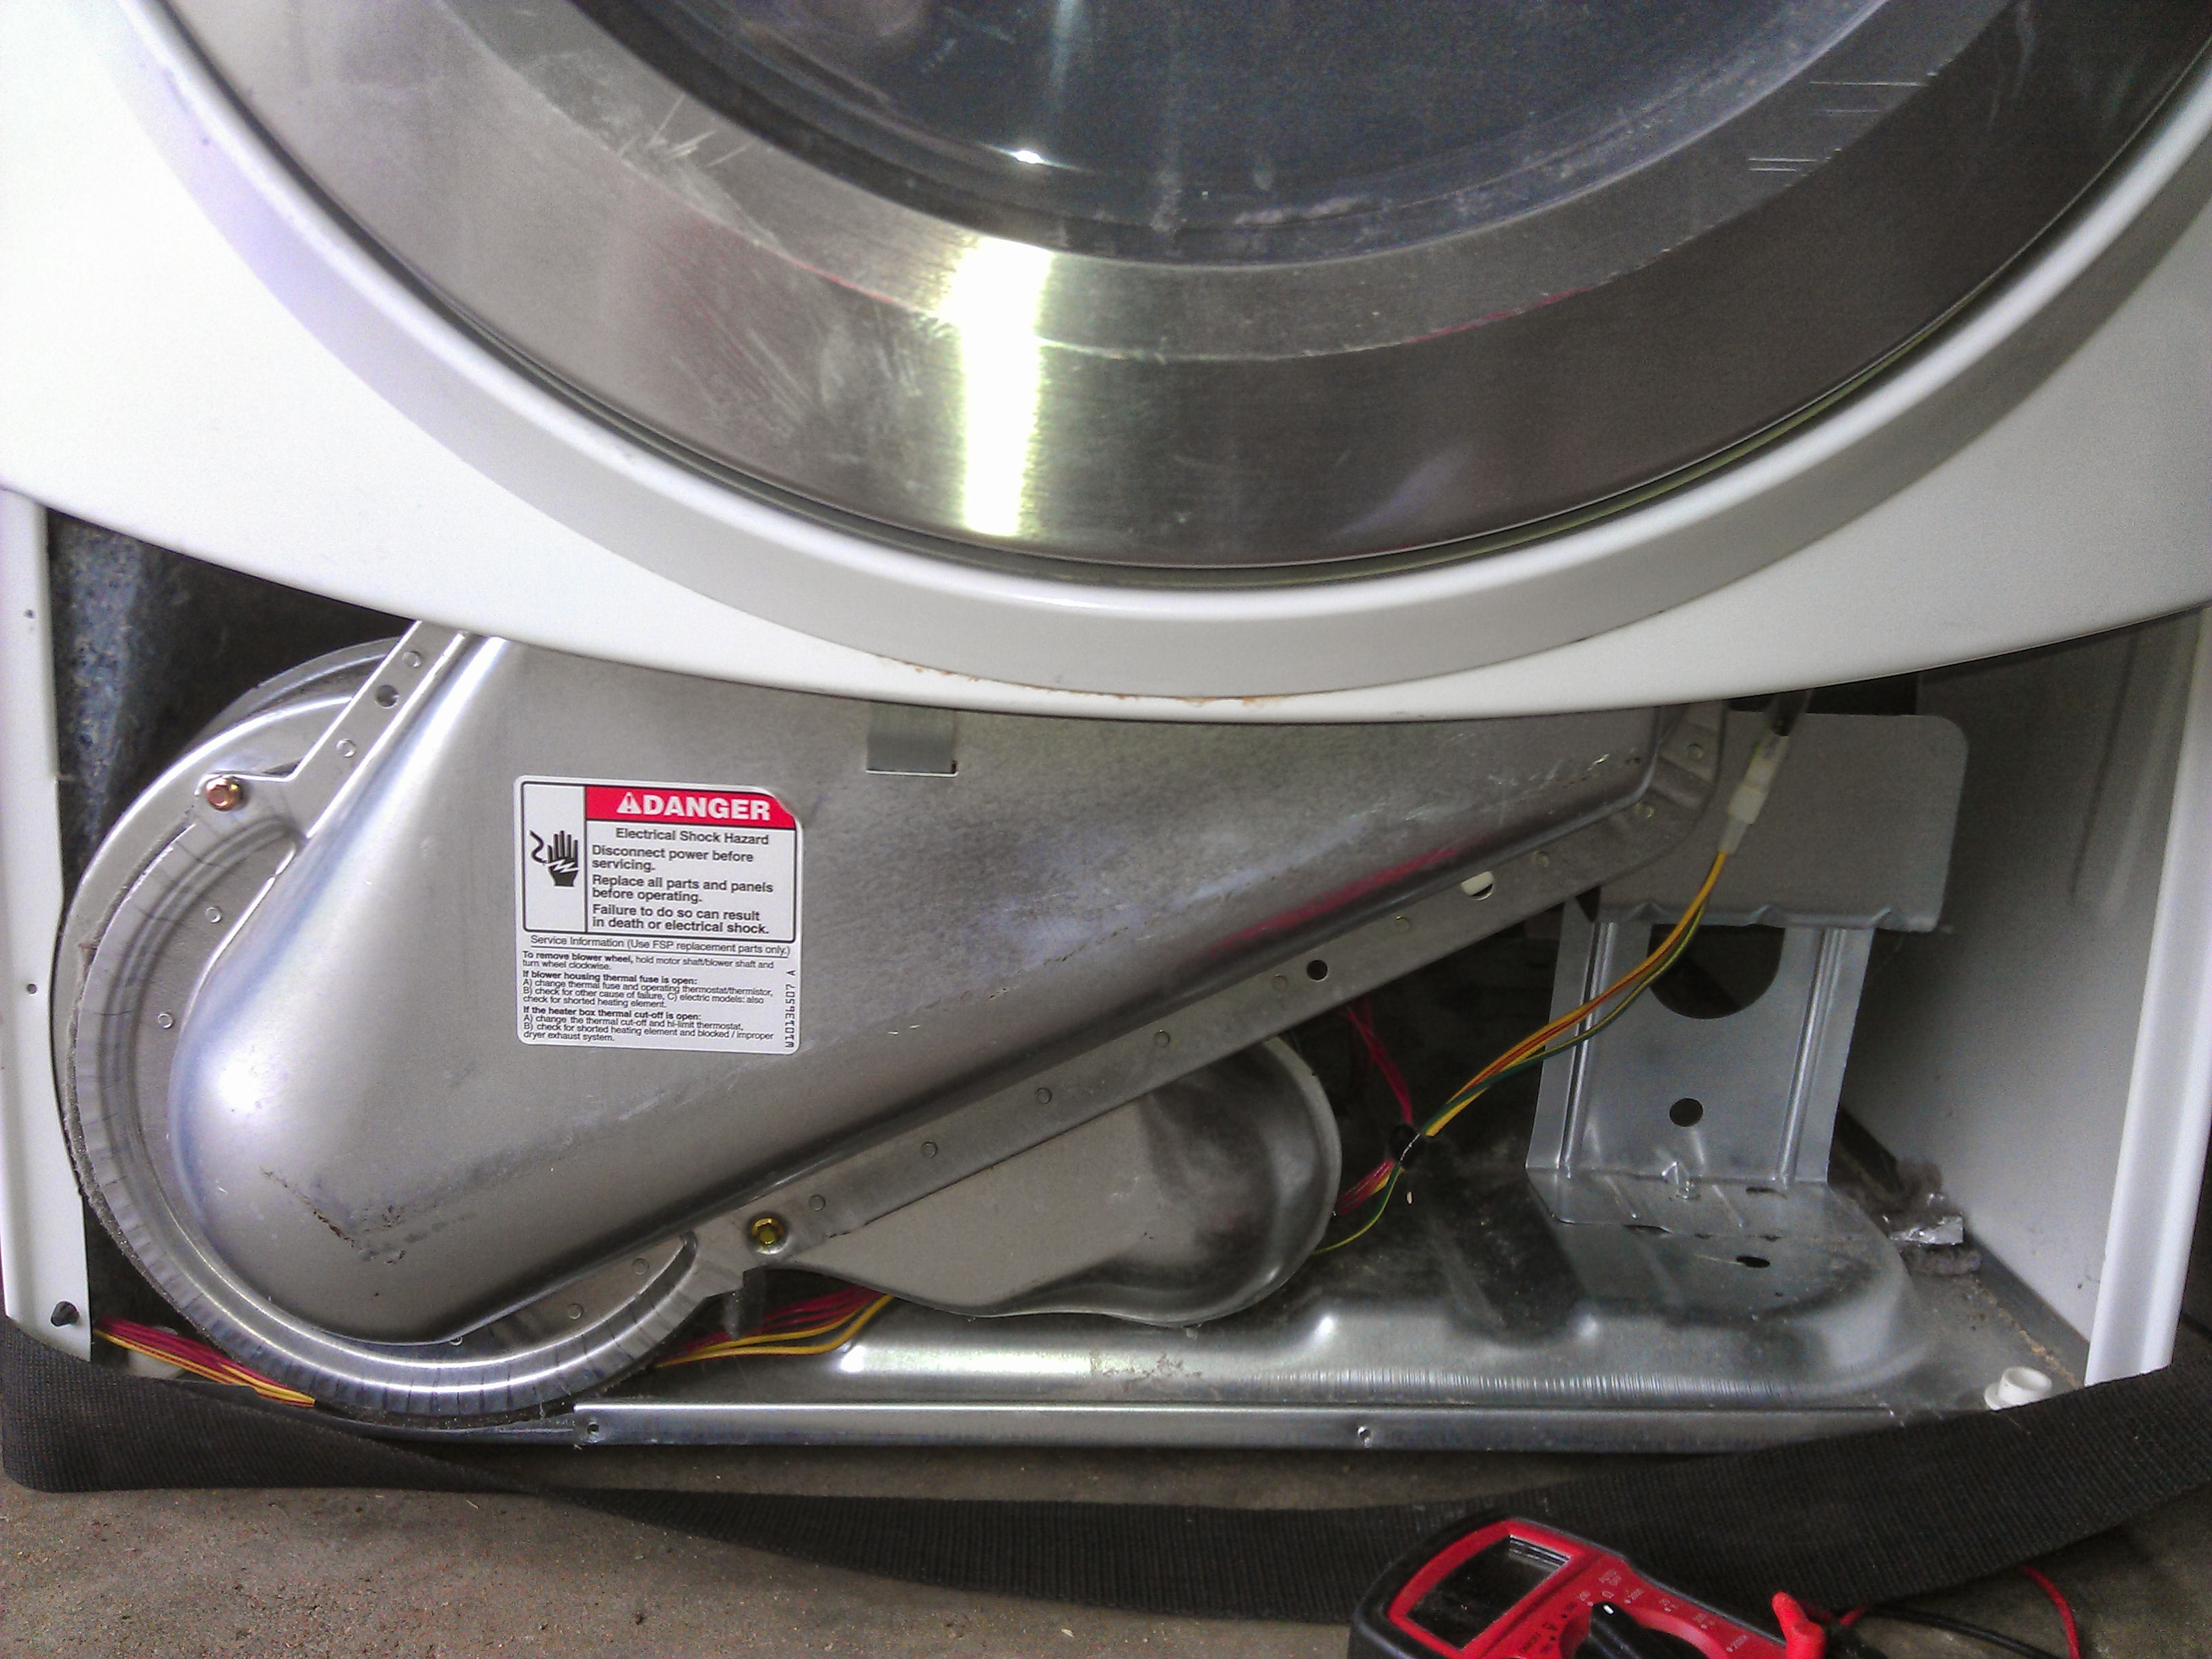 whirlpool duet dryer parts diagram 2003 ford f 150 fuse where is the heating element on a dryer? | not